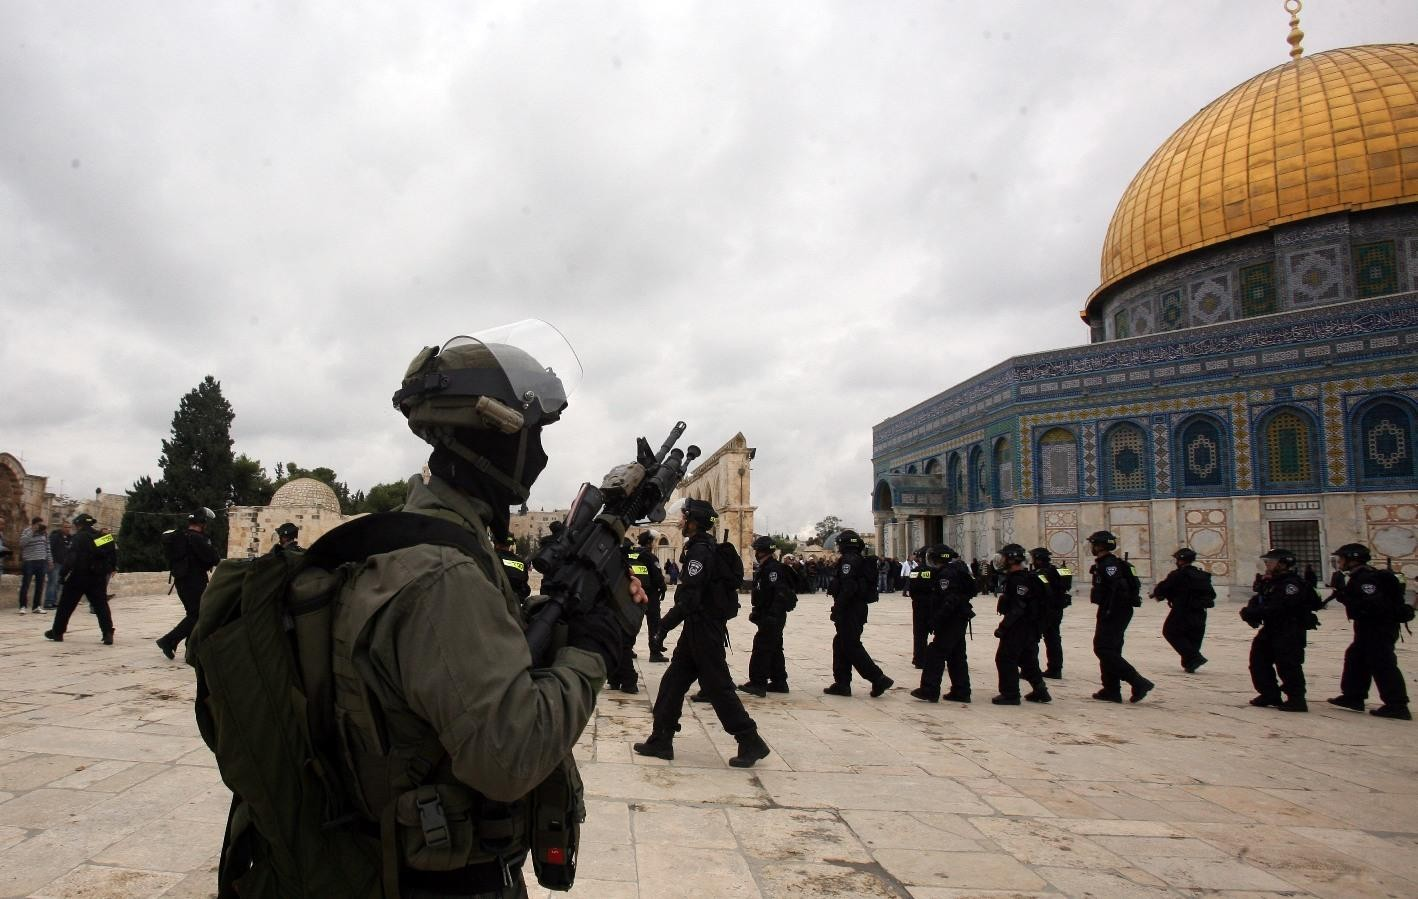 Euro-Med sends letter to UN, EU warning against Israel's closure of Al-Aqsa Mosque